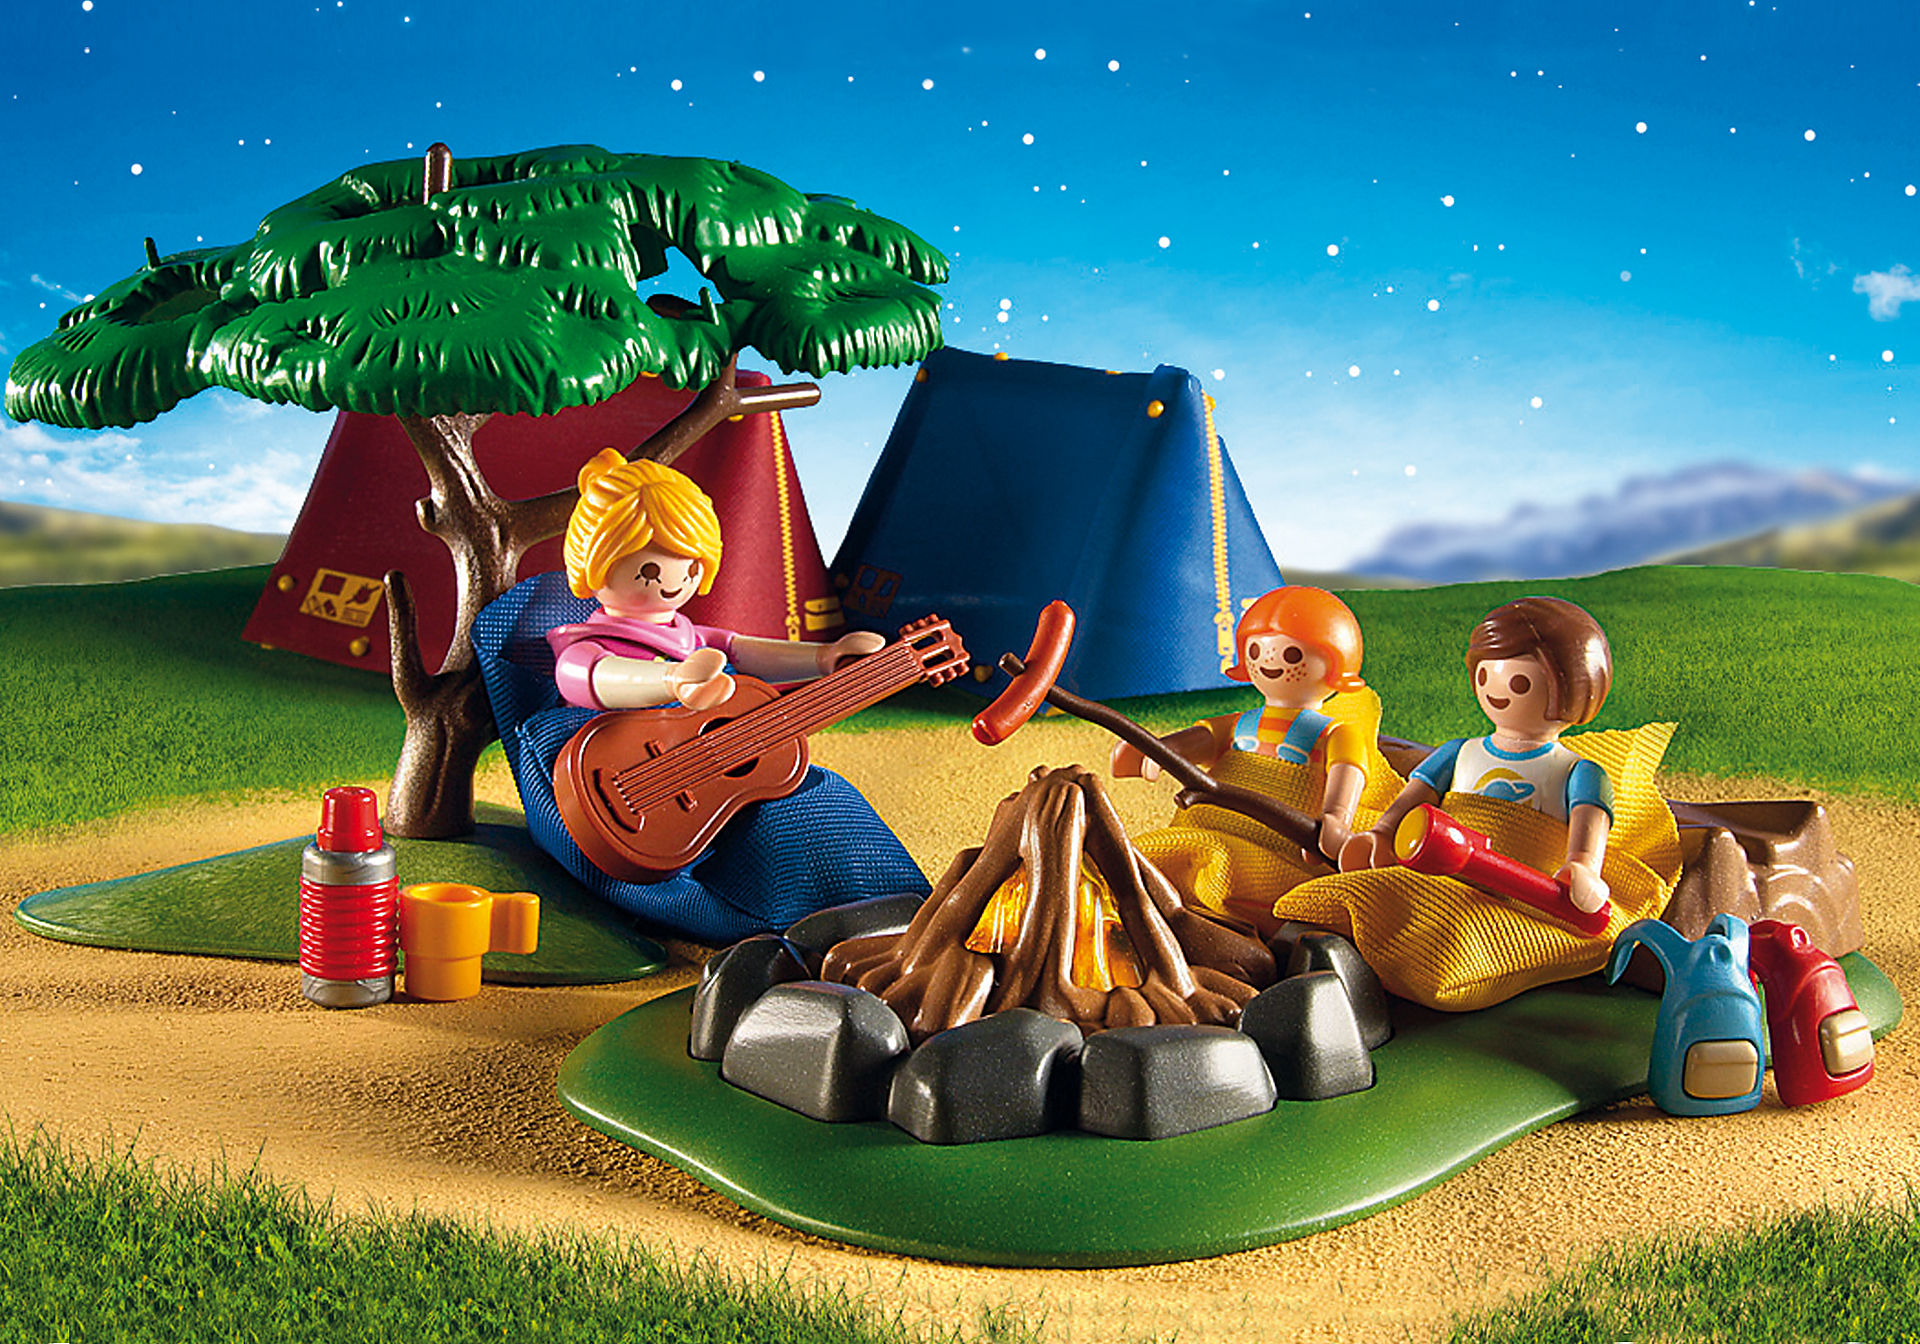 http://media.playmobil.com/i/playmobil/6888_product_extra1/Zeltlager mit LED-Lagerfeuer